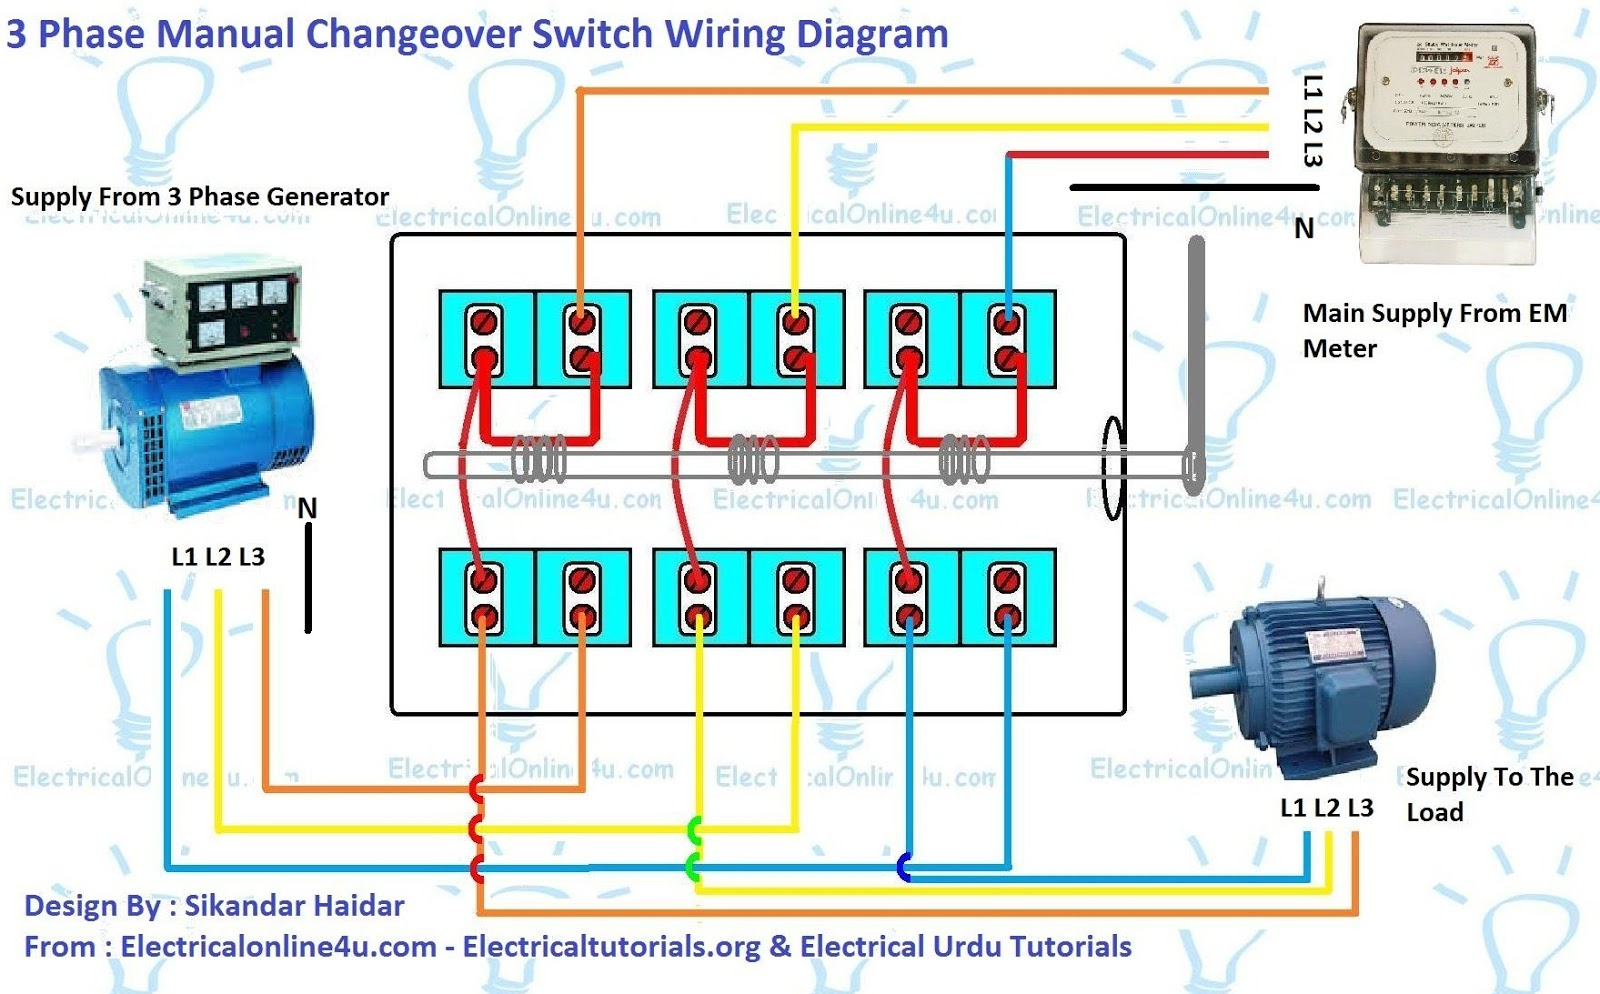 3%2Bphase%2Bmanual%2Bchangeover%2Bswitch%2Bwiring%2Bdiagram 3 phase manual changeover switch wiring diagram for generator 3 phase wiring schematic at gsmportal.co